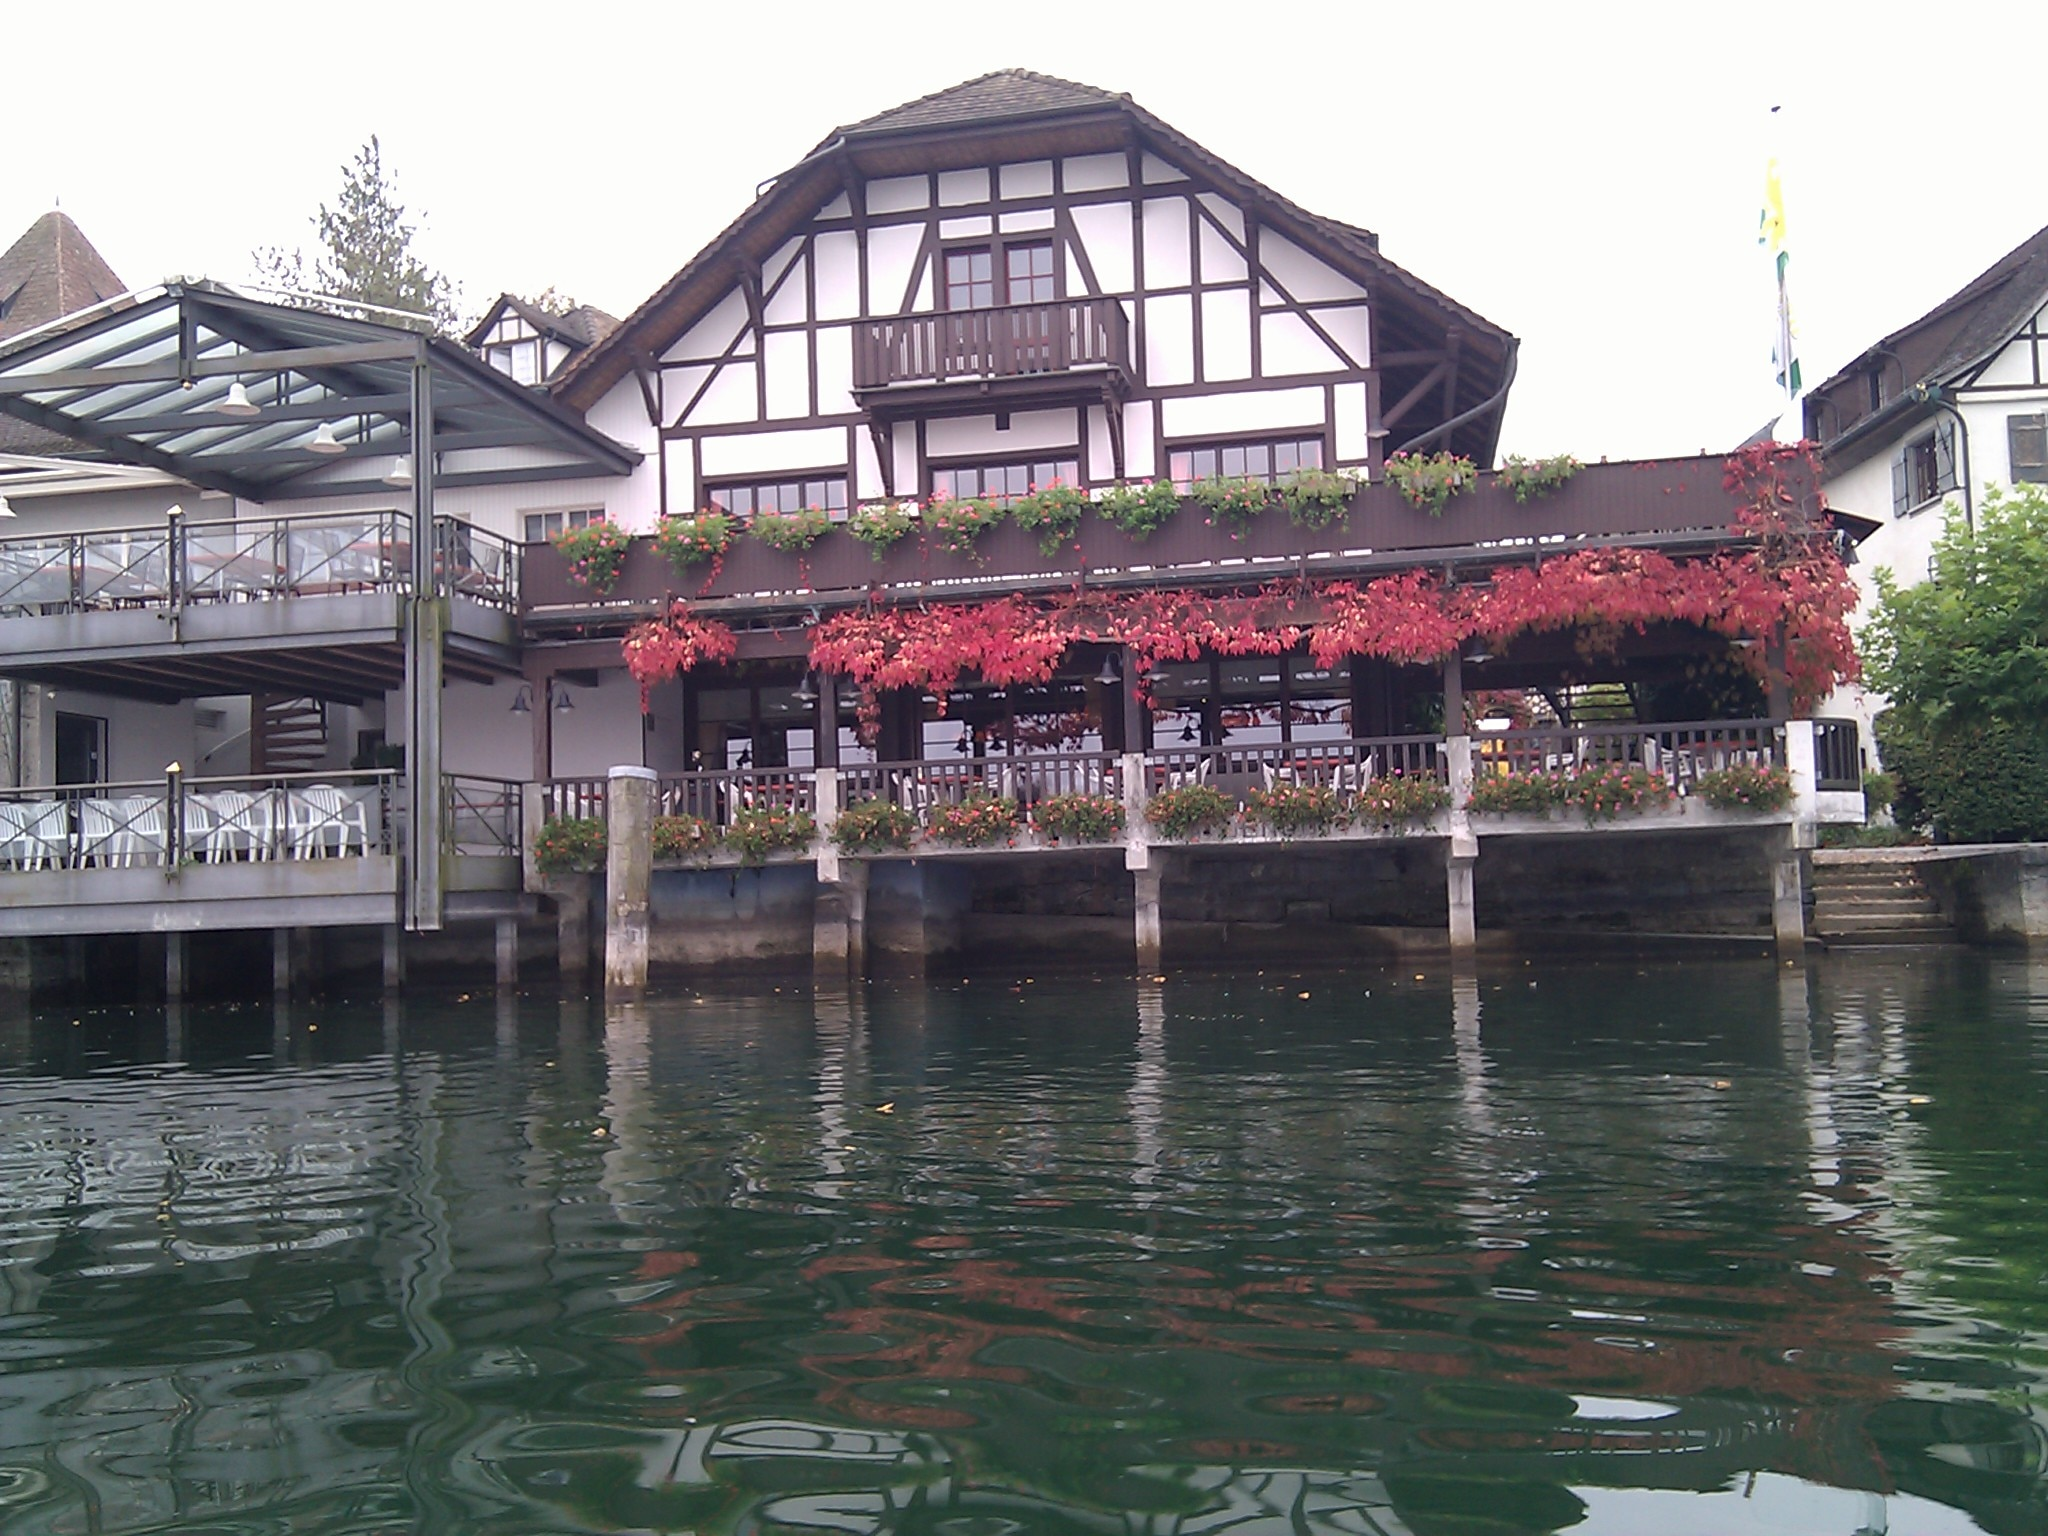 A colorful restaurant just downstream from Kreuzlingen.